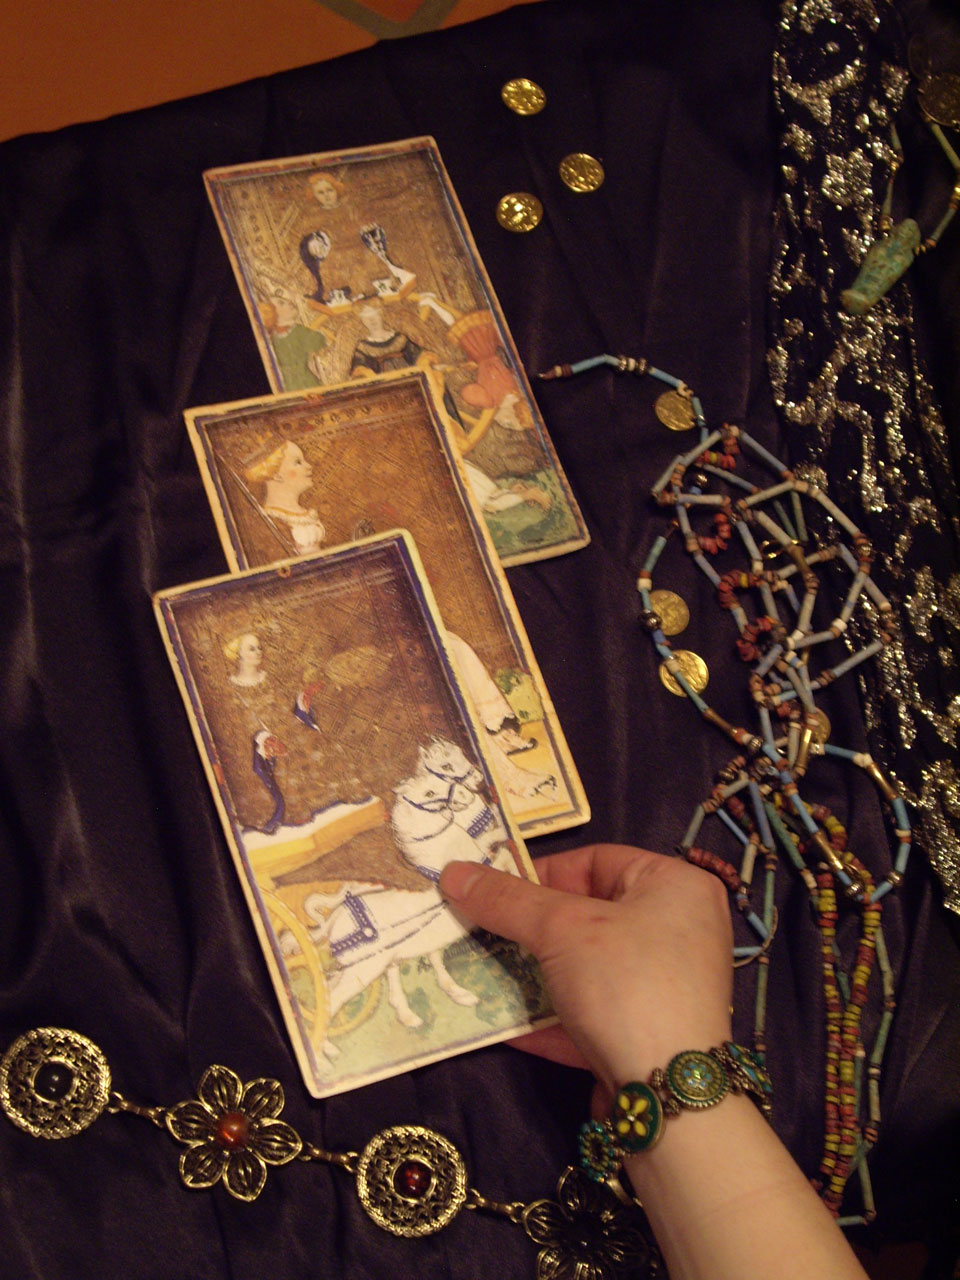 That Tarot Lady